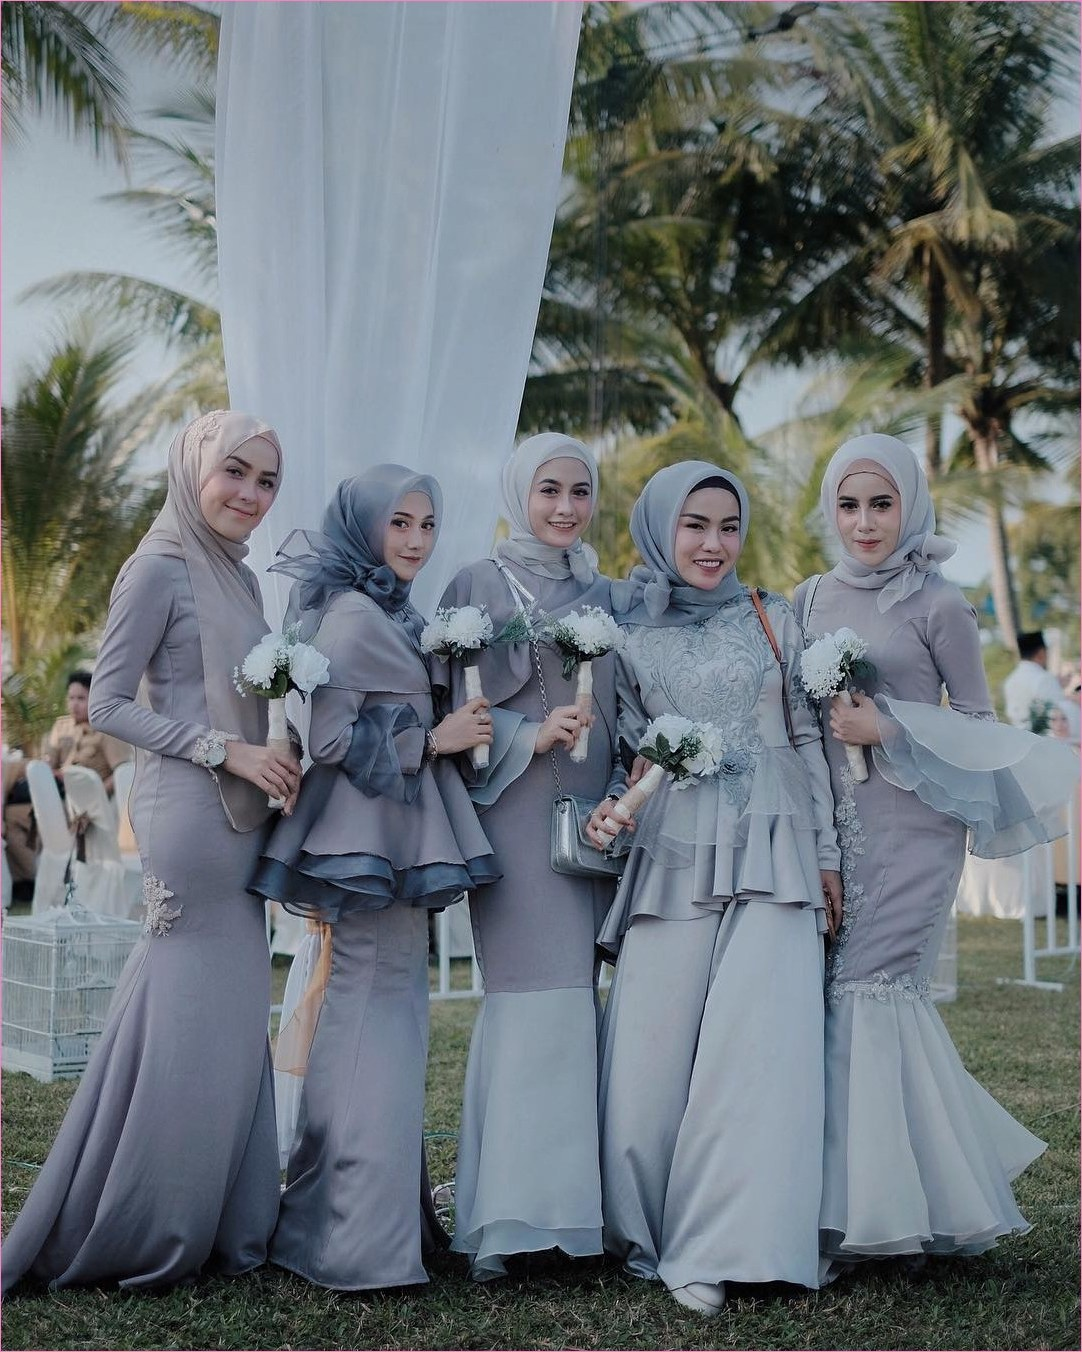 Bentuk Model Baju Bridesmaid Hijab Brokat Ffdn Dress Brokat Abu Abu Gamis Brokat